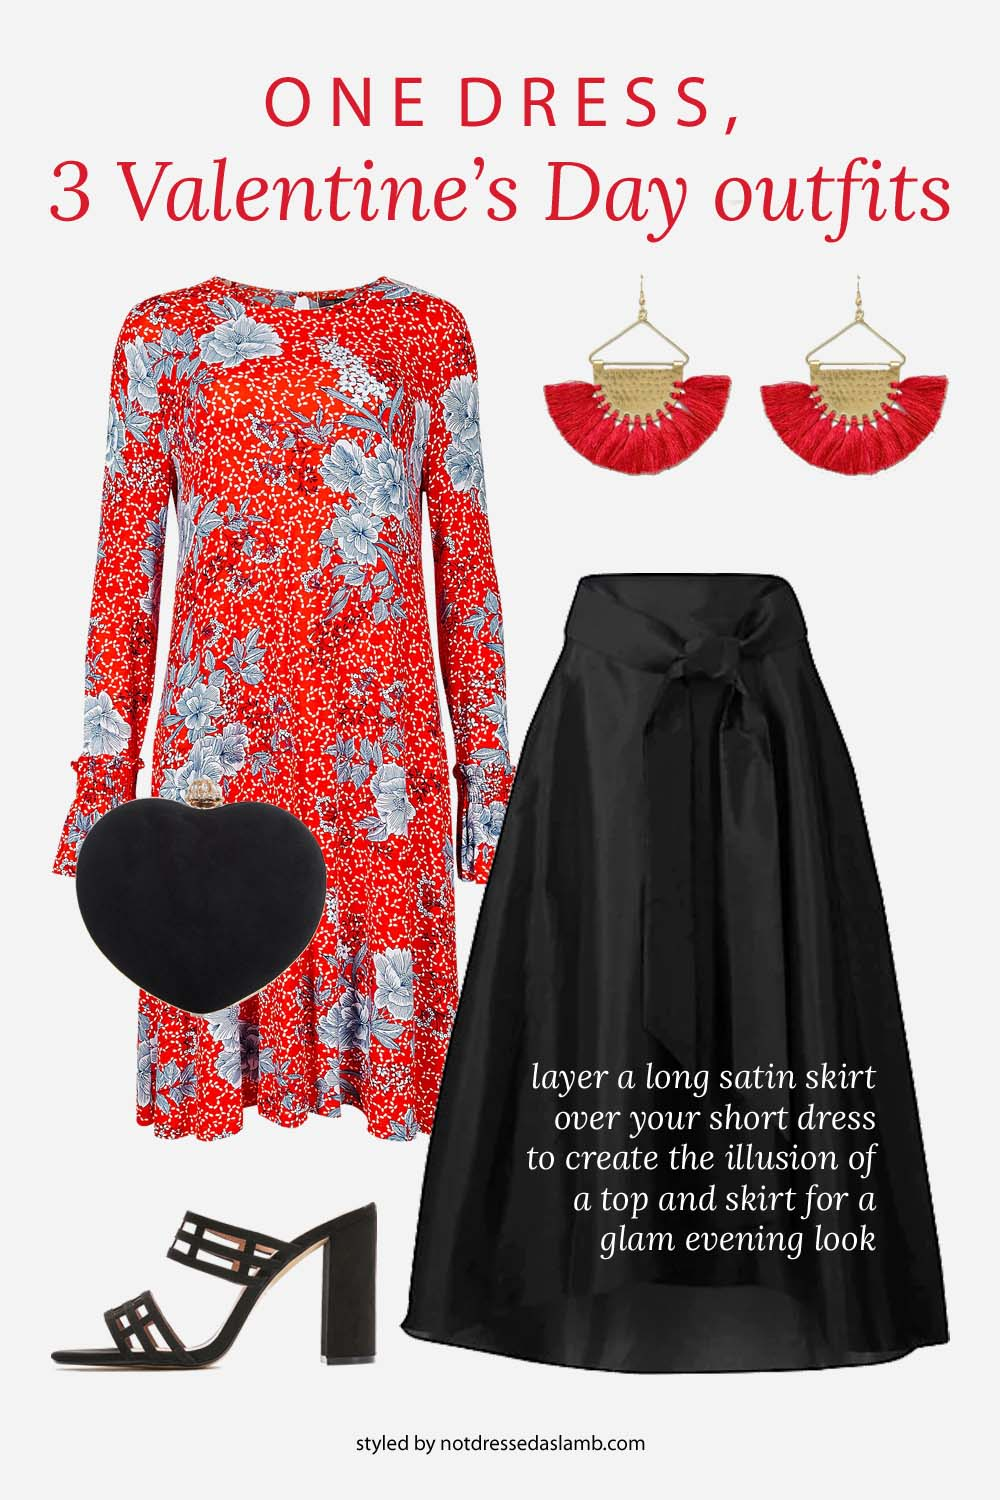 3 Ways to Style One Red Floral Dress for Valentine's Day | Glamorous evening wear outfit, creating a faux top by layering a long full satin skirt over the dress and adding heels and killer earrings